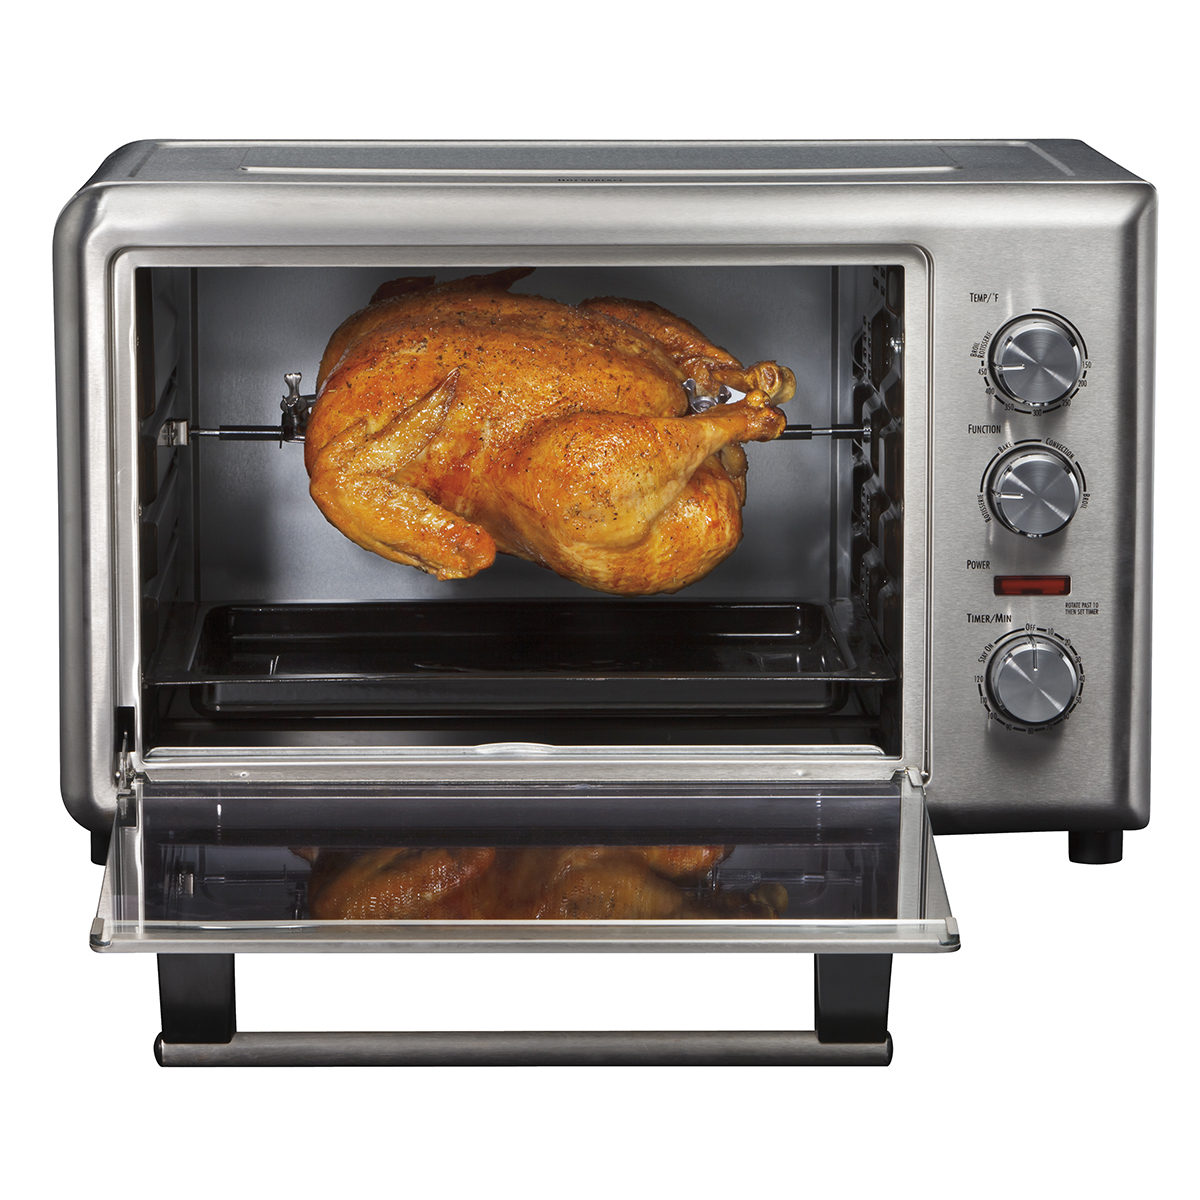 Countertop Oven 31103 Stainless Hamiltonbeach Com